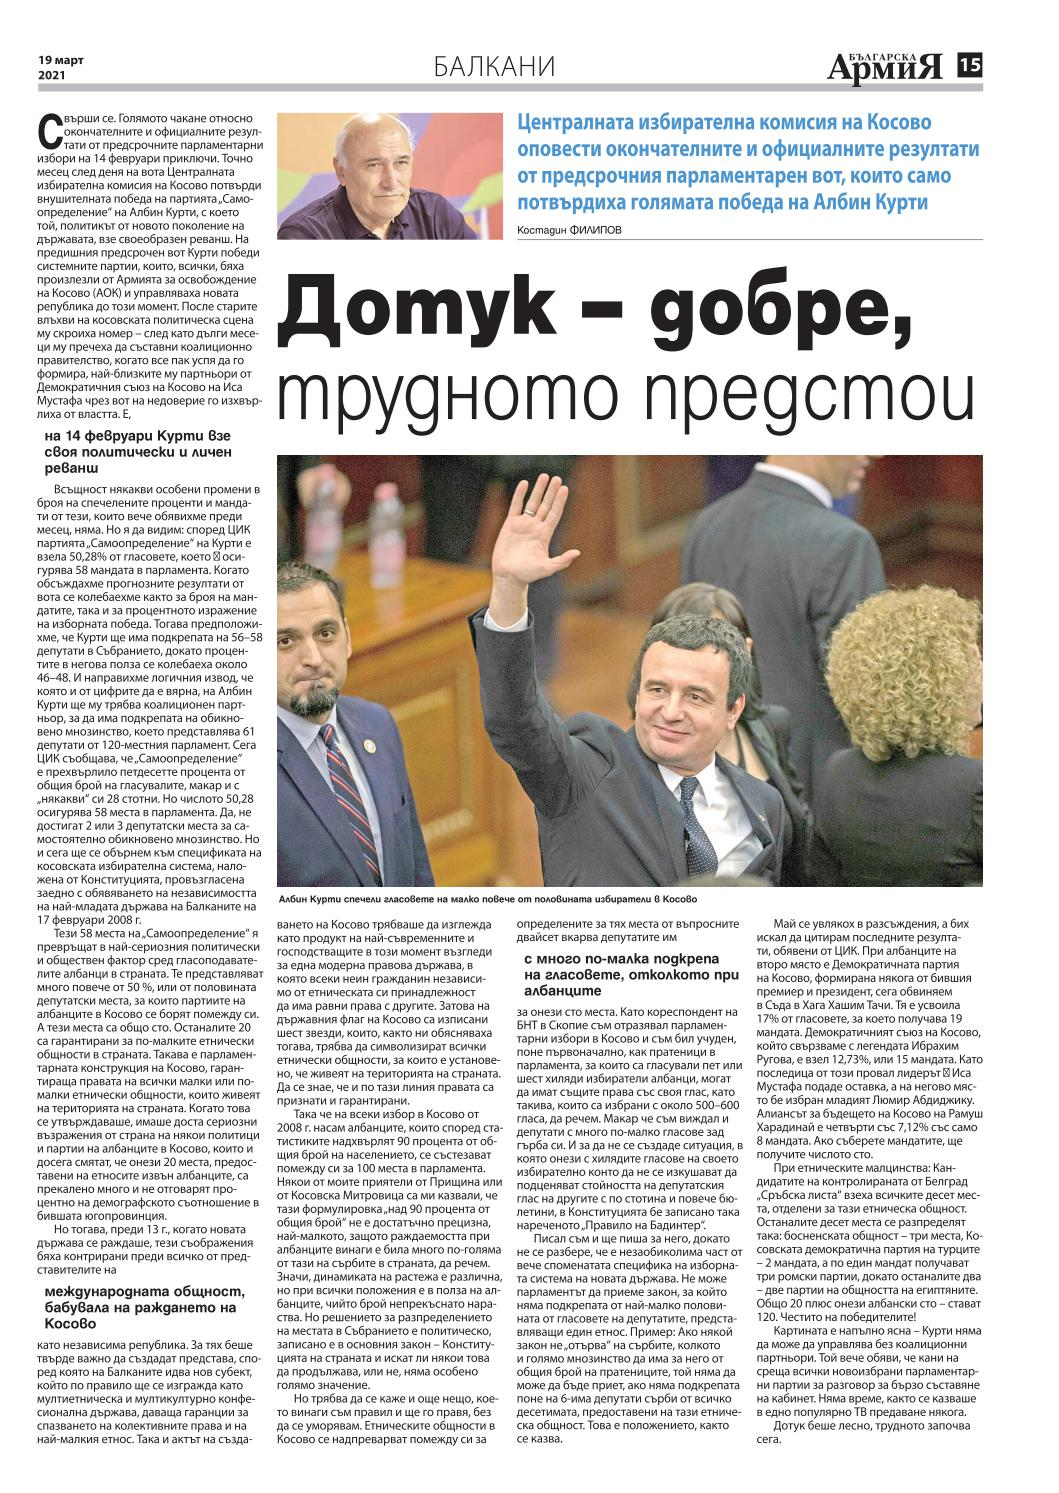 https://armymedia.bg/wp-content/uploads/2021/04/15.page1_-155.jpg